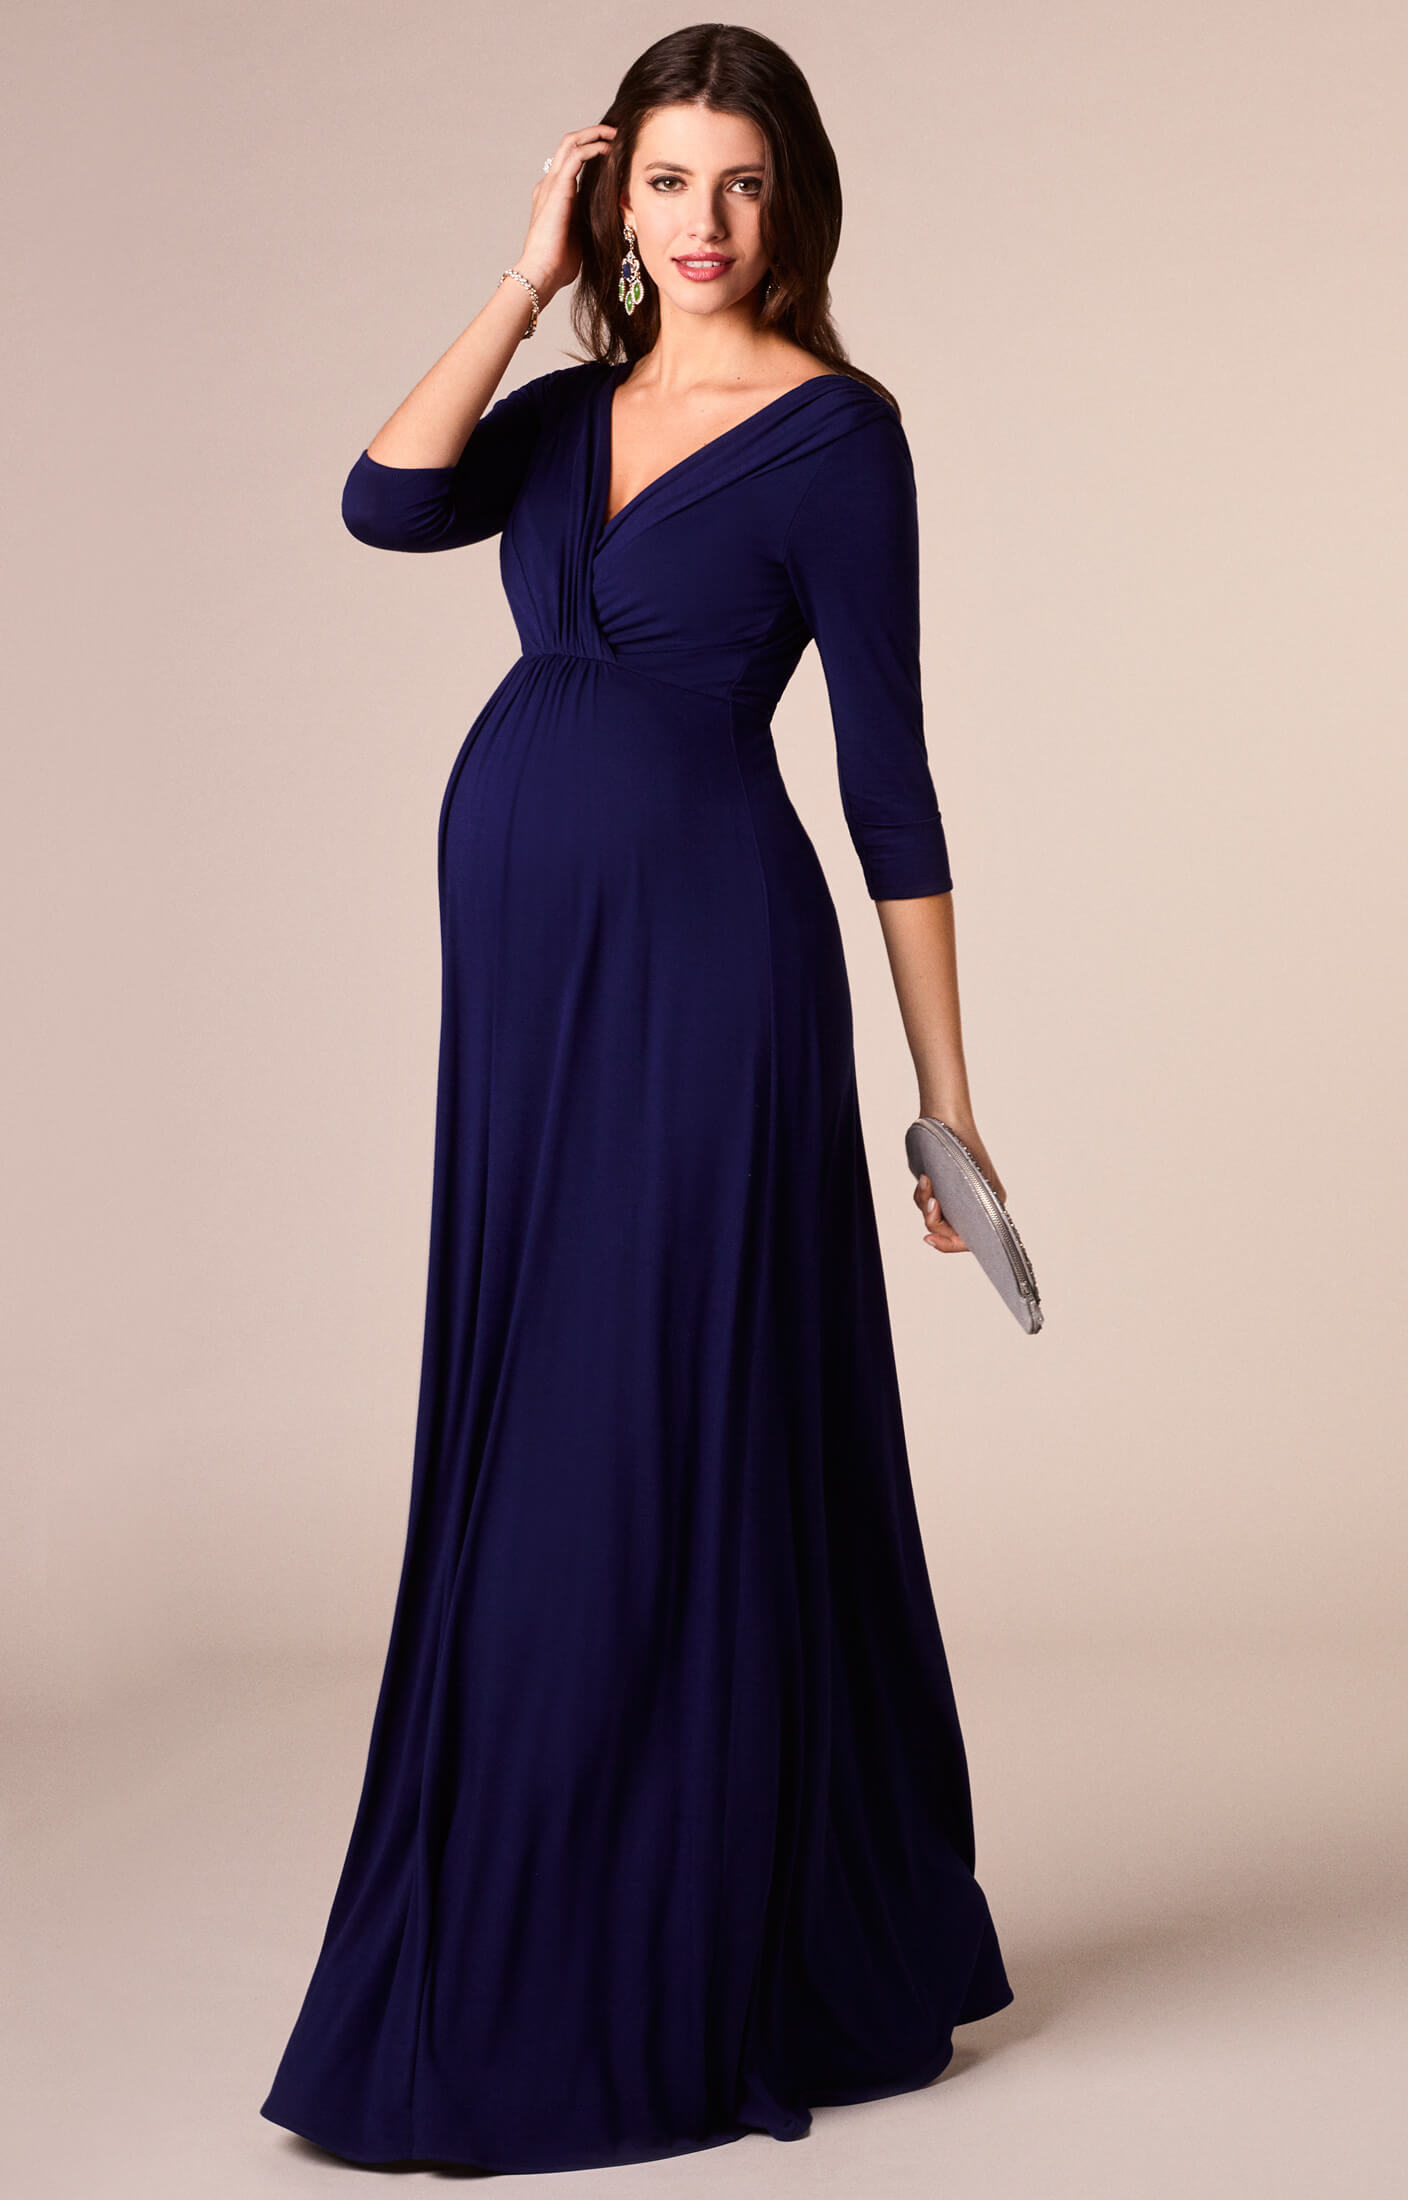 Maternity Night Out Cocktail Dresses Offer Comfort and Style. Maternity night out cocktail dresses are for style and comfort, so you look chic for your special evening on the town.